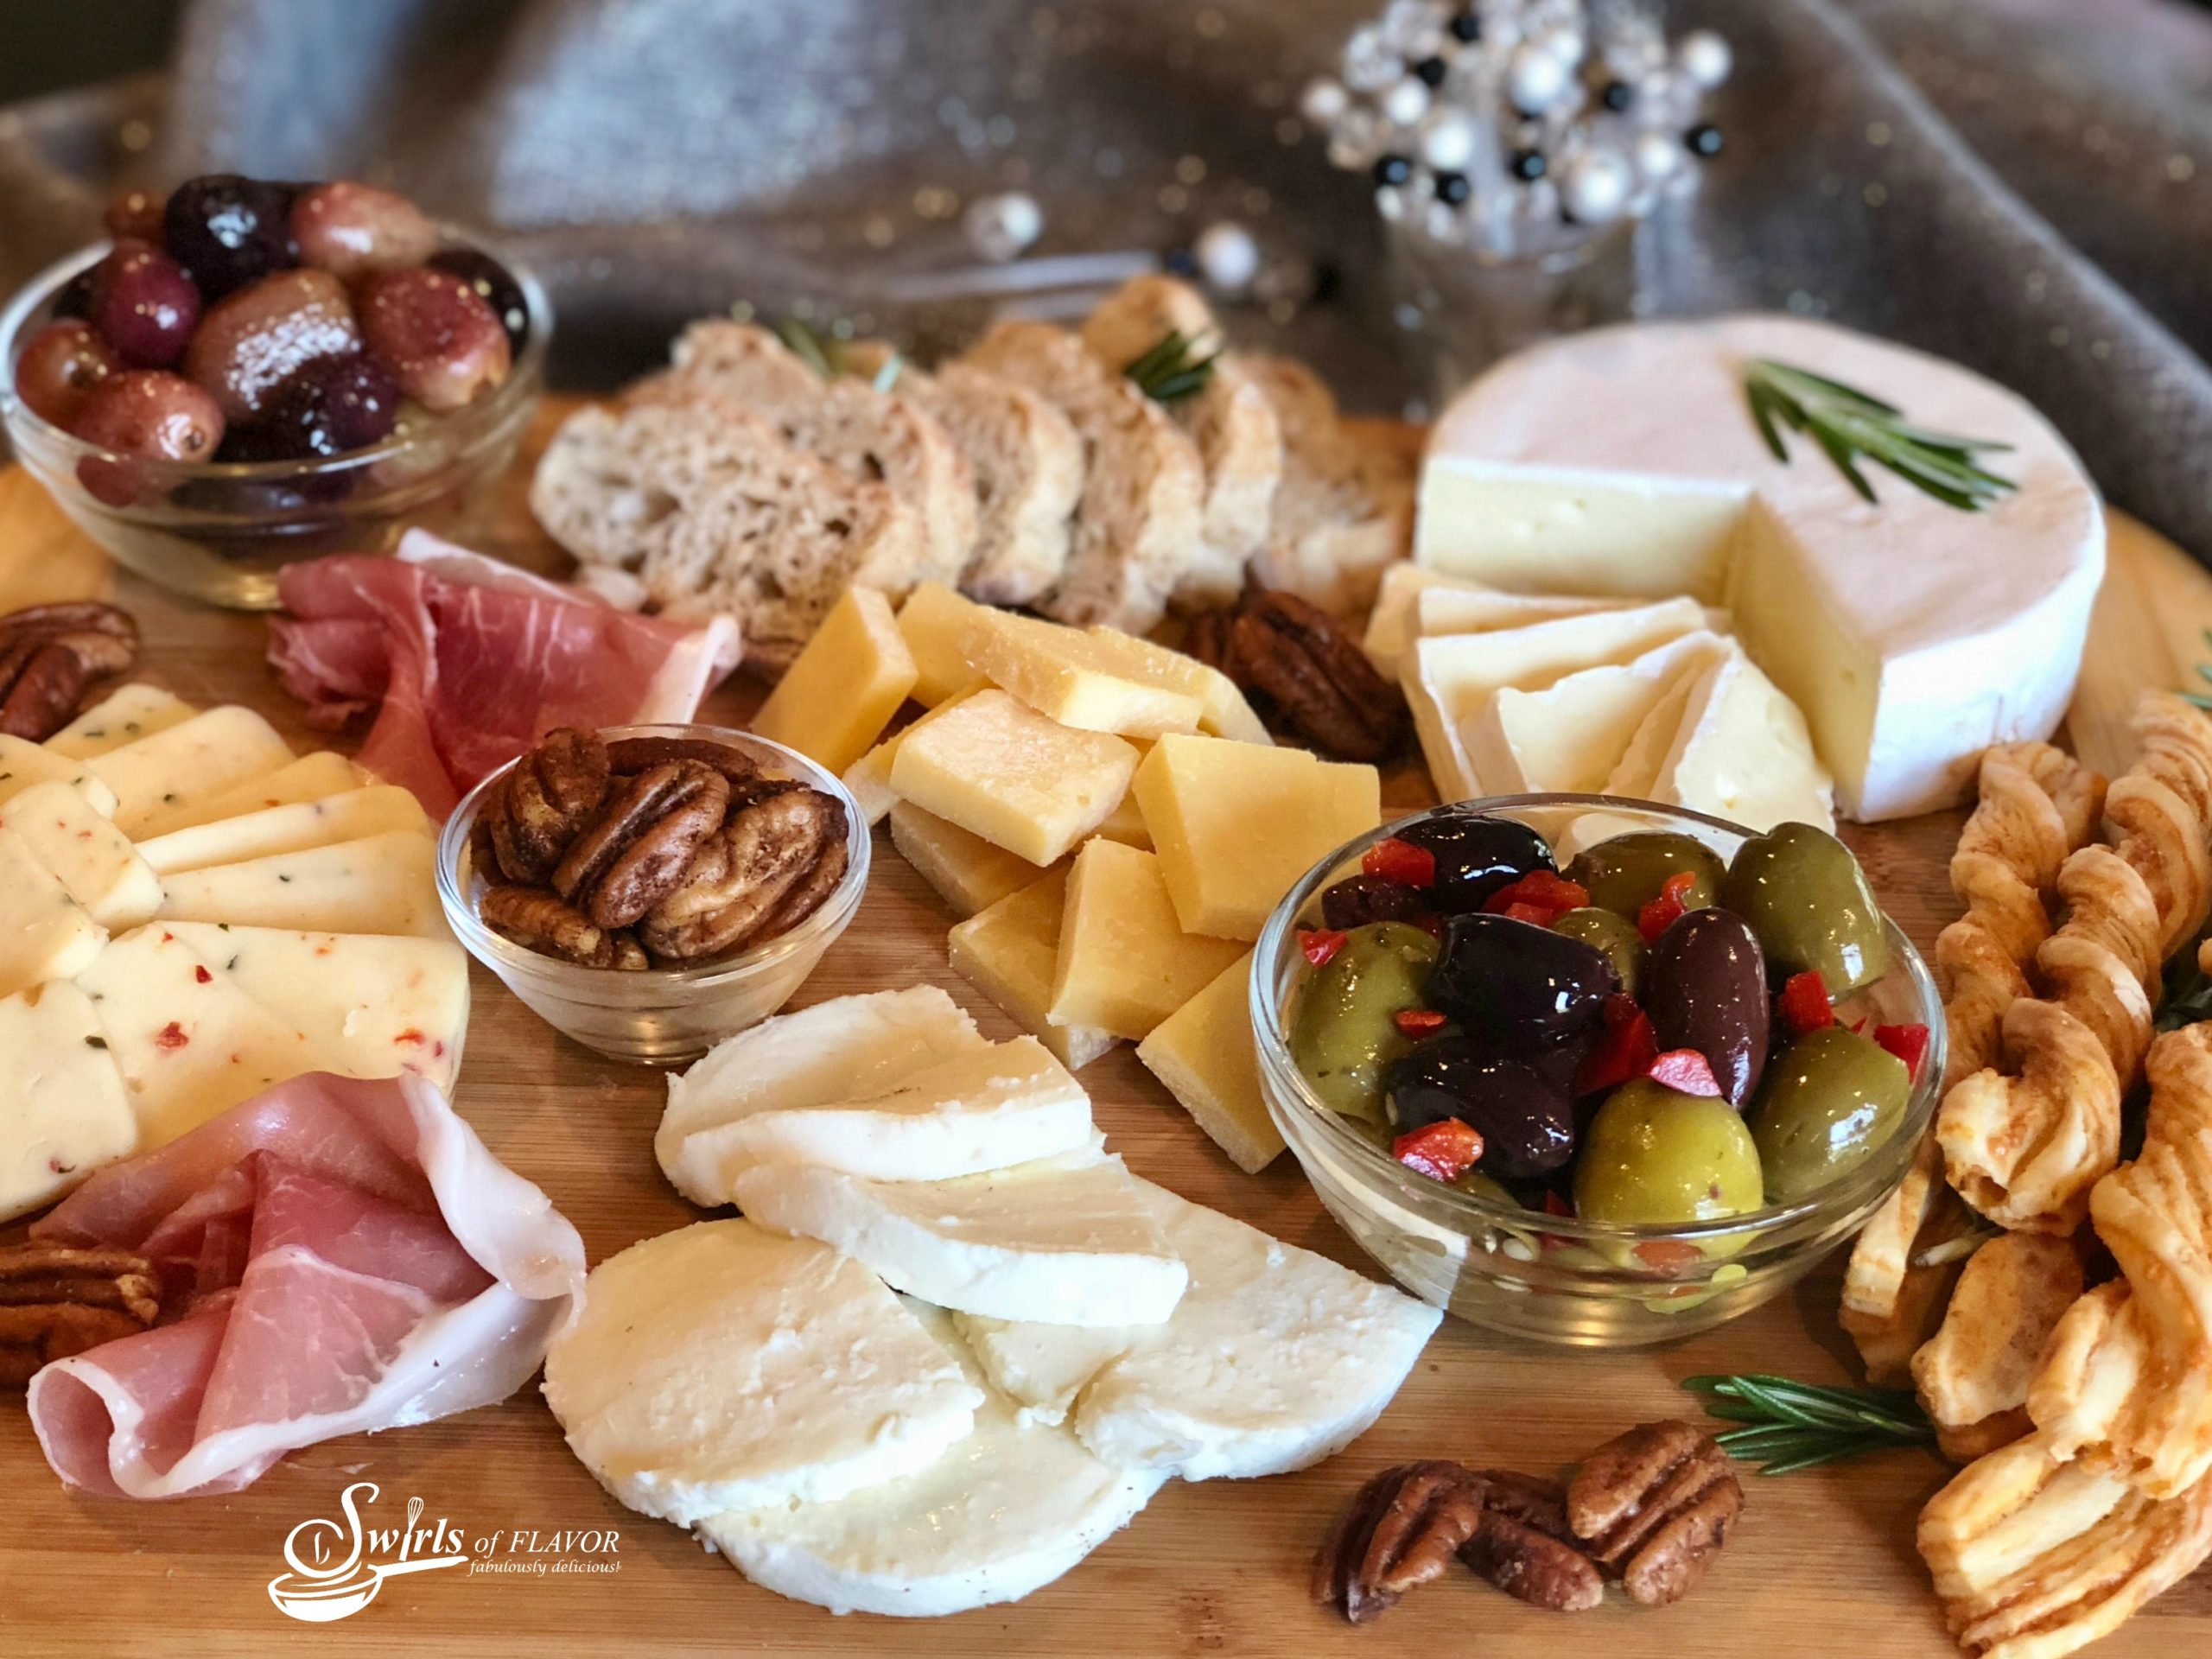 A Holiday Cheese Board is an impressive appetizer or even a dessert when it's filled with assorted cheeses, ciabiatta bread, mixed olives, roasted grapes and spiced pecans. Easy to assemble, Our Holiday Cheese Board will be the center piece of your table with it's unexpected Balsamic Roasted Grapes and Buttery Spiced Pecans! #cheeseboard #holiday #entertaining #roastedgraped #spicedpecans #cheese #newyearseve #christmas #easyrecipe #swirlsofflavor